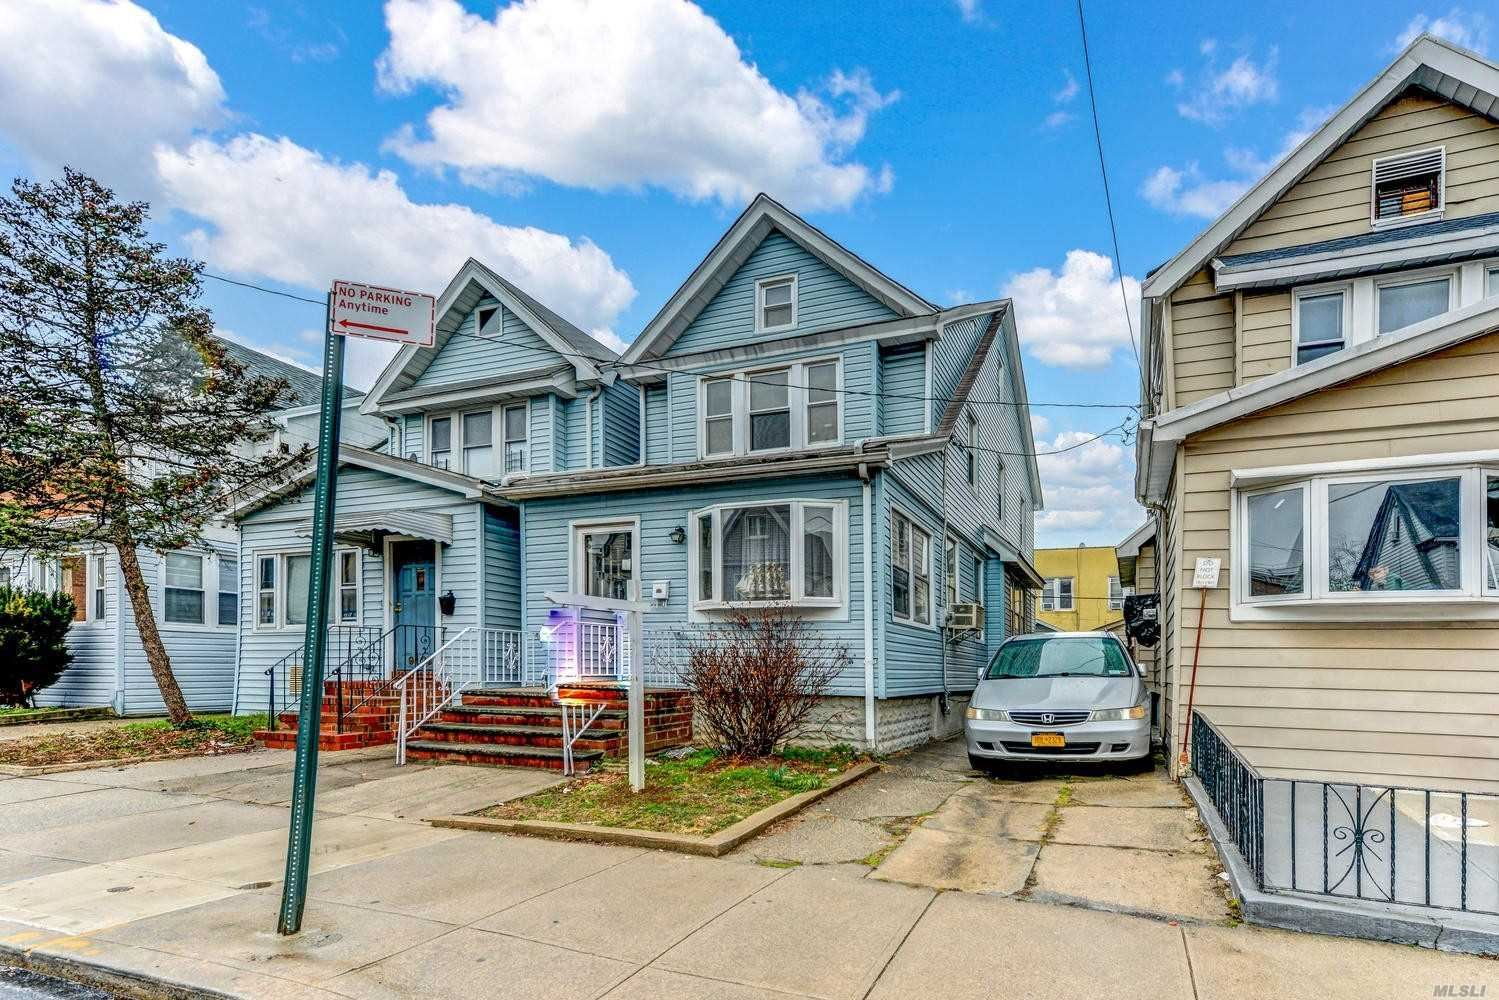 91-25 88th Rd, Woodhaven, NY 11421 - MLS#: 3211499